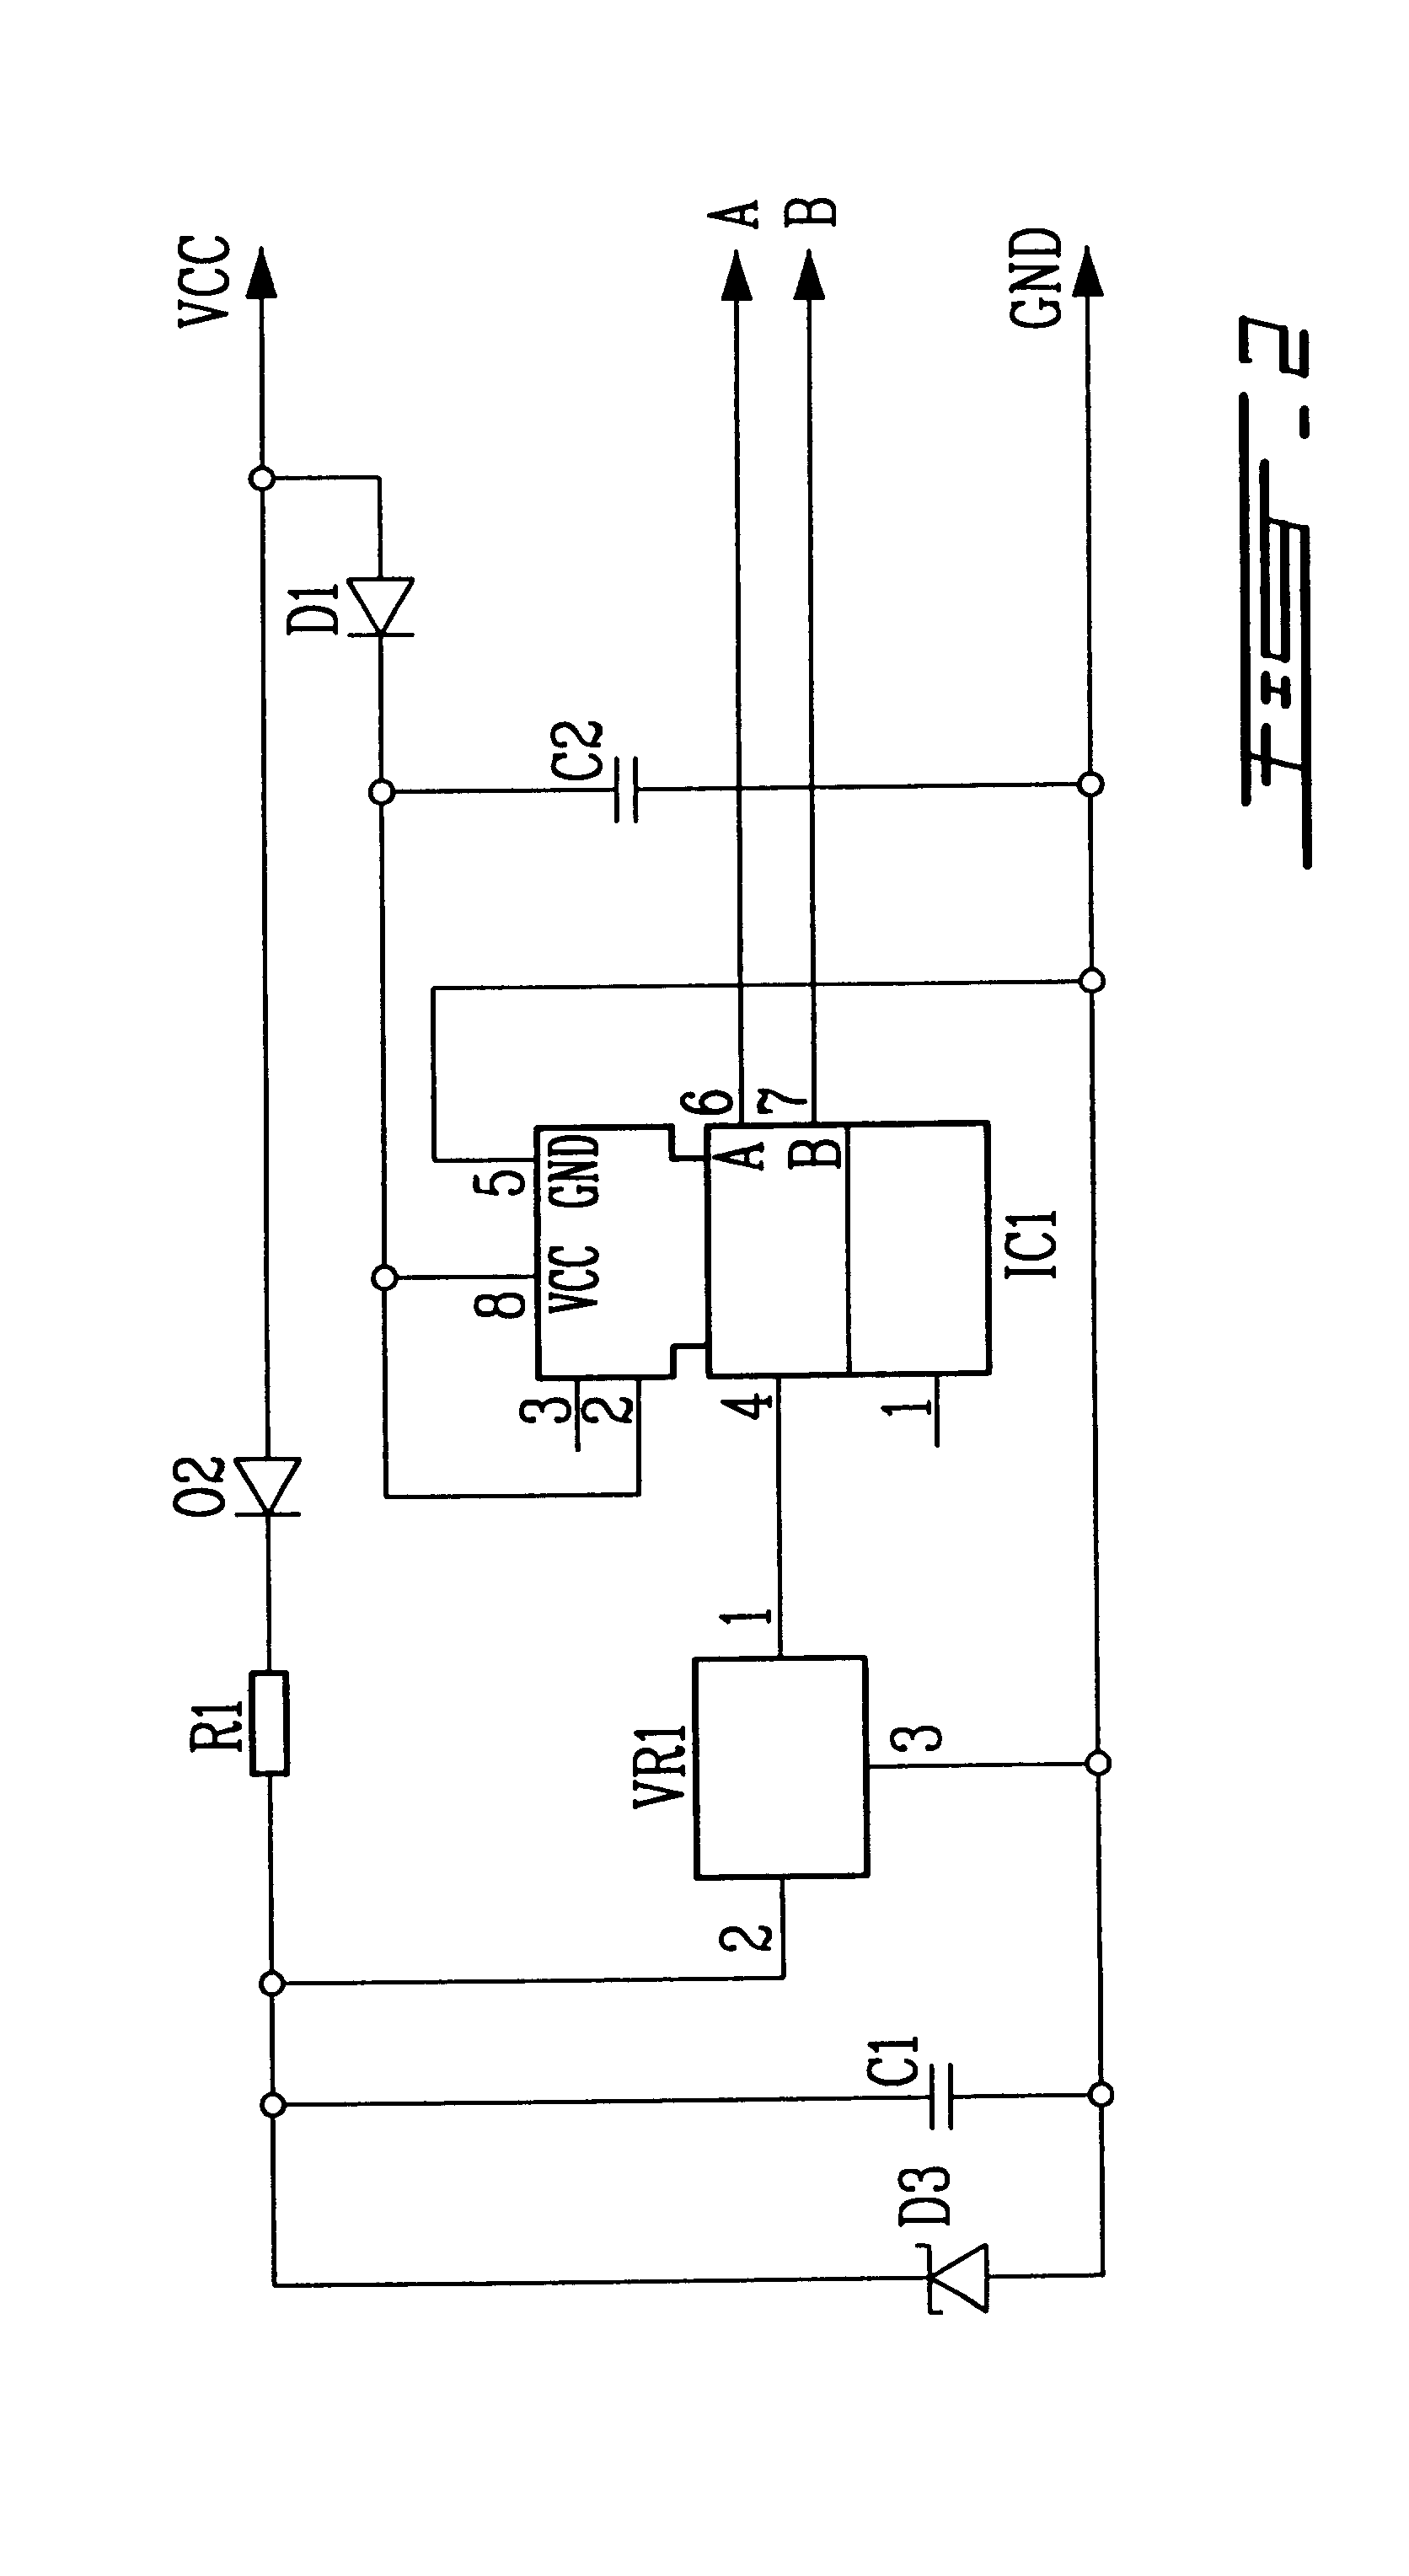 US06224255 20010501 D00002 patent us6224255 temperature pickup for oil filled vessels and qualitrol 167 wiring diagram at mifinder.co